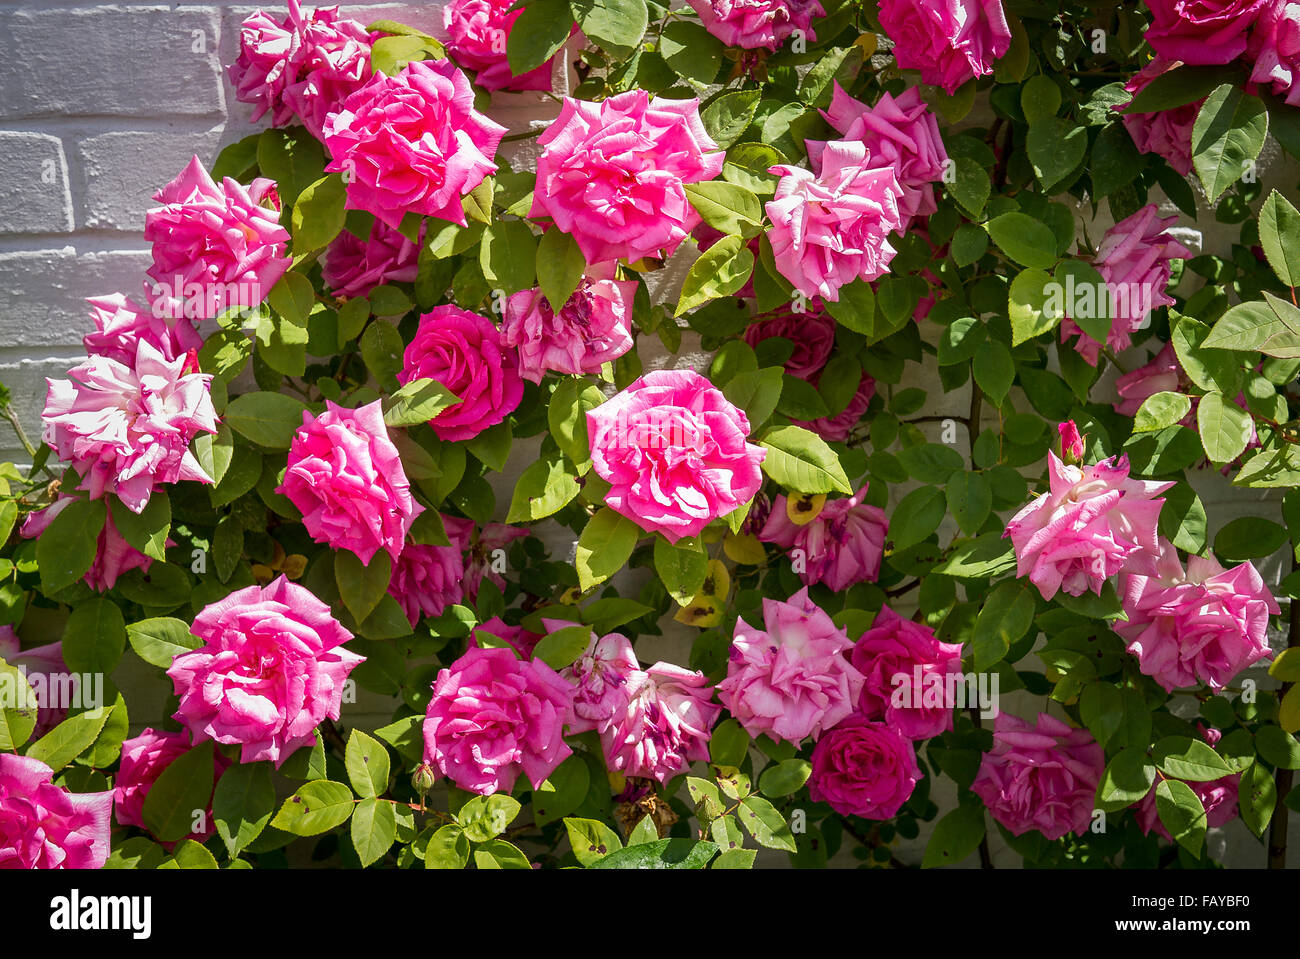 Love Garden Roses: Climbing Rose Zephirine Drouhin In Full Flower Stock Photo